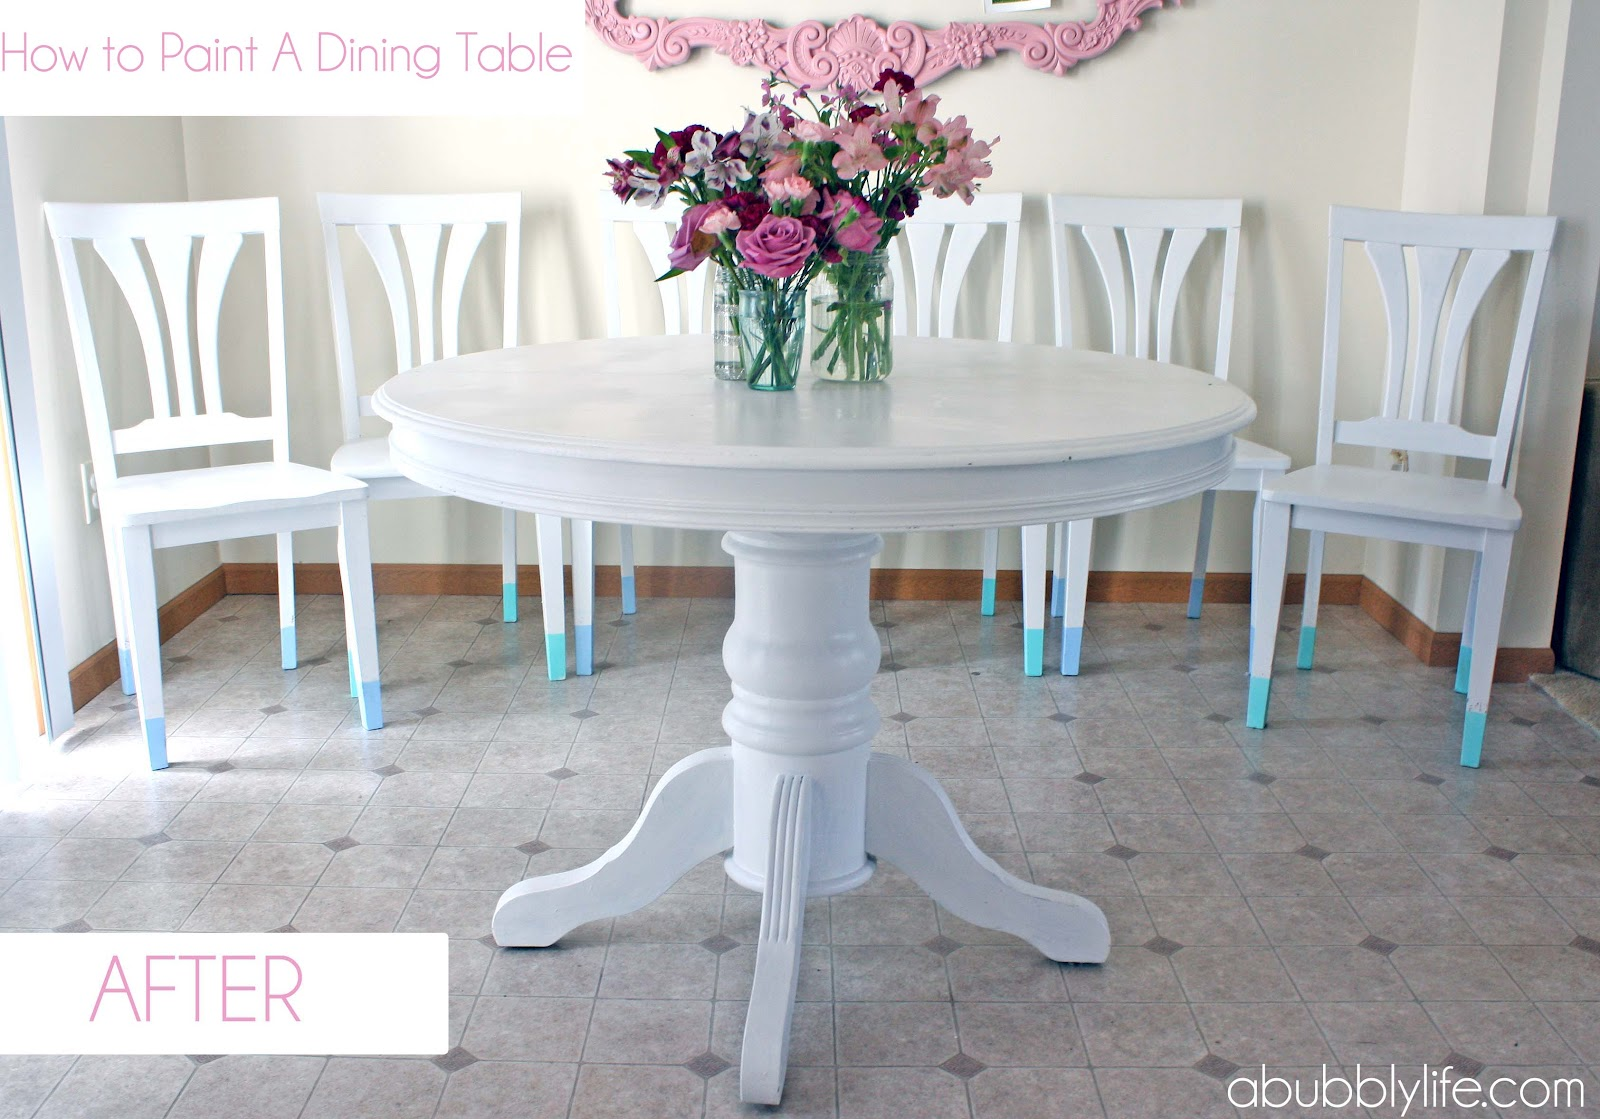 Painting dining chairs Photo - 1